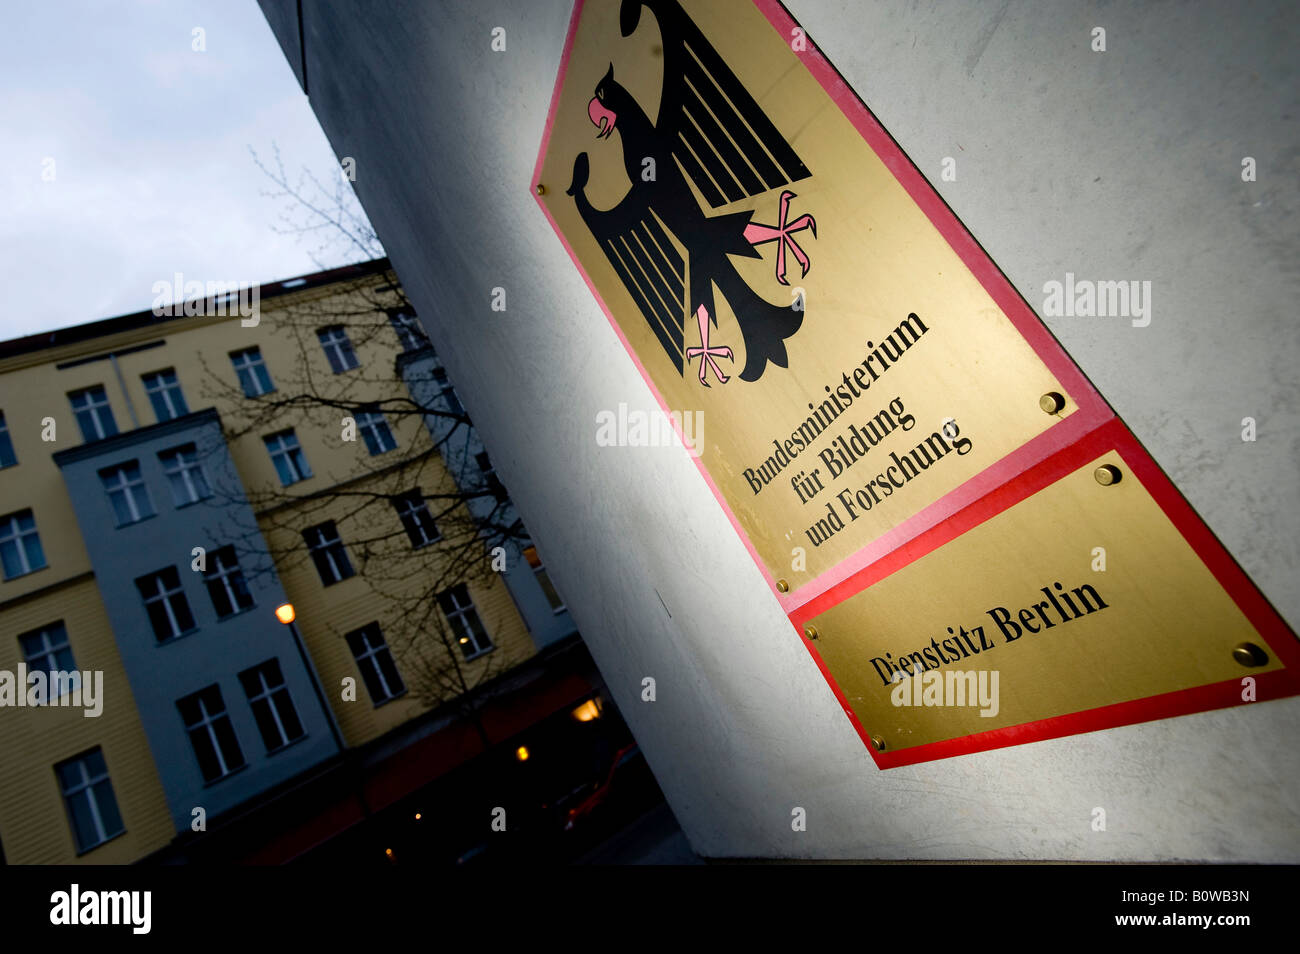 Federal Ministry of Education and Research, Berlin, Germany - Stock Image